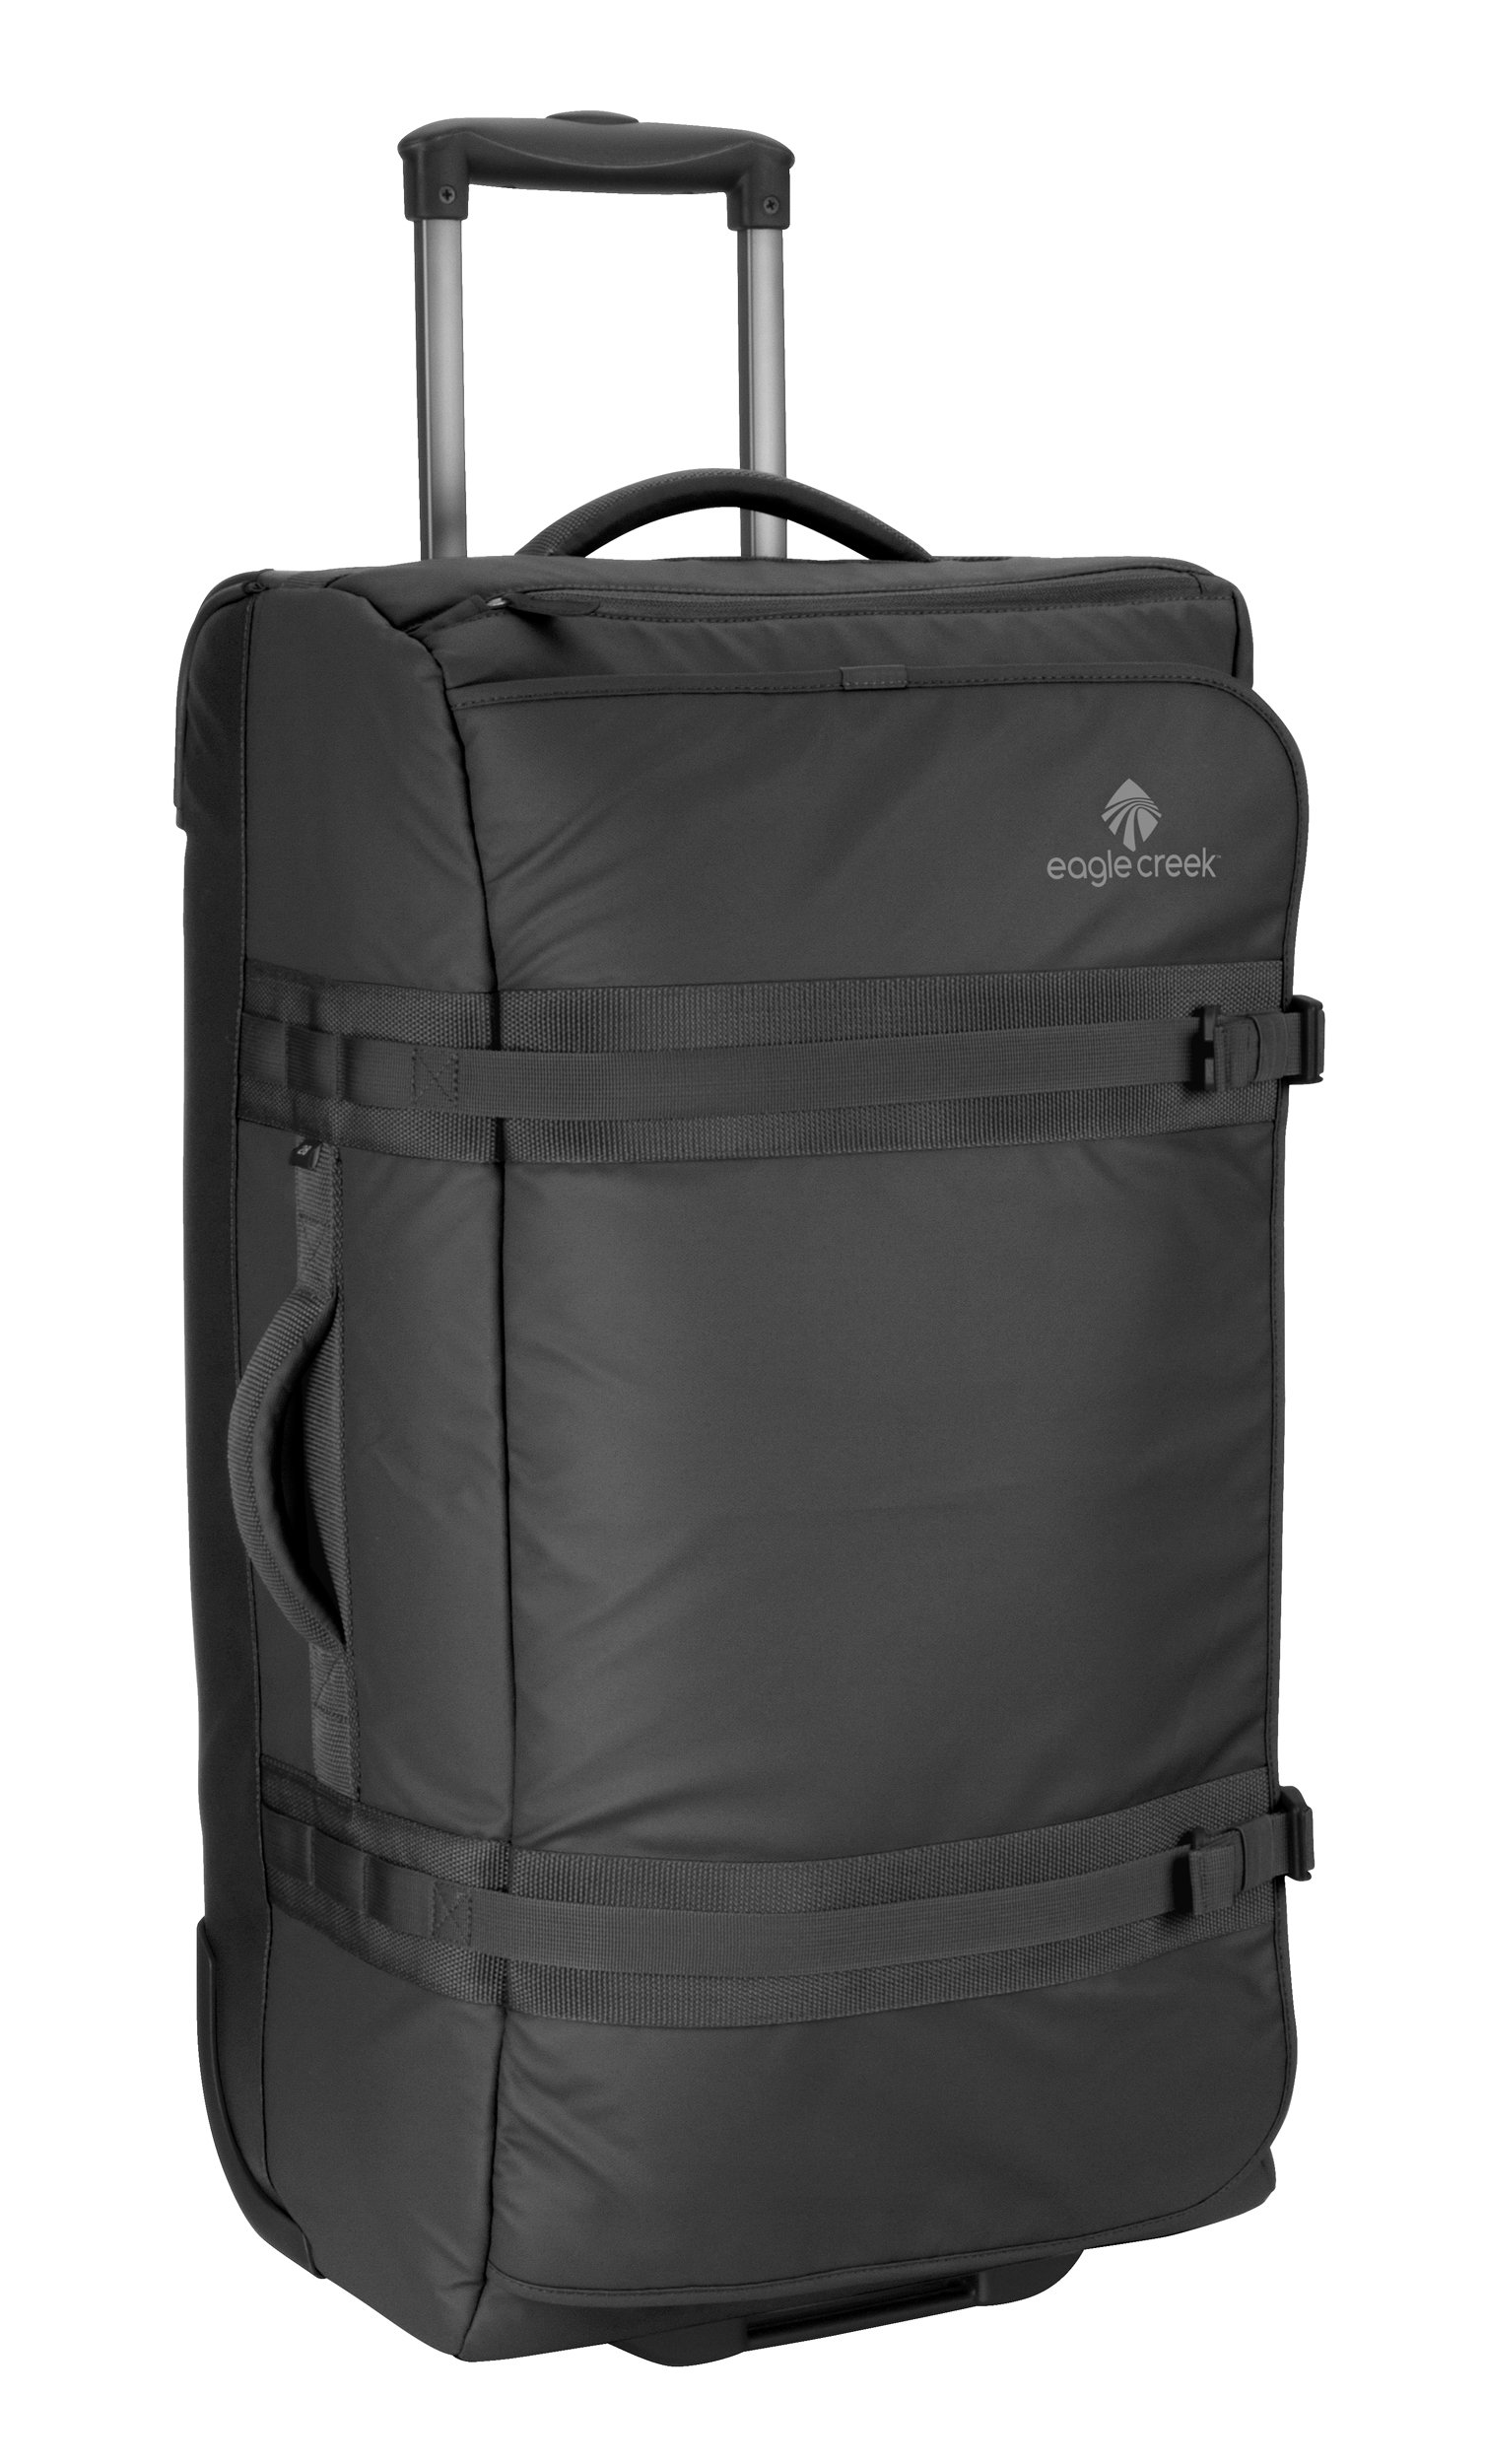 Eagle Creek No Matter What Flatbed Duffel 28, Black, One Size